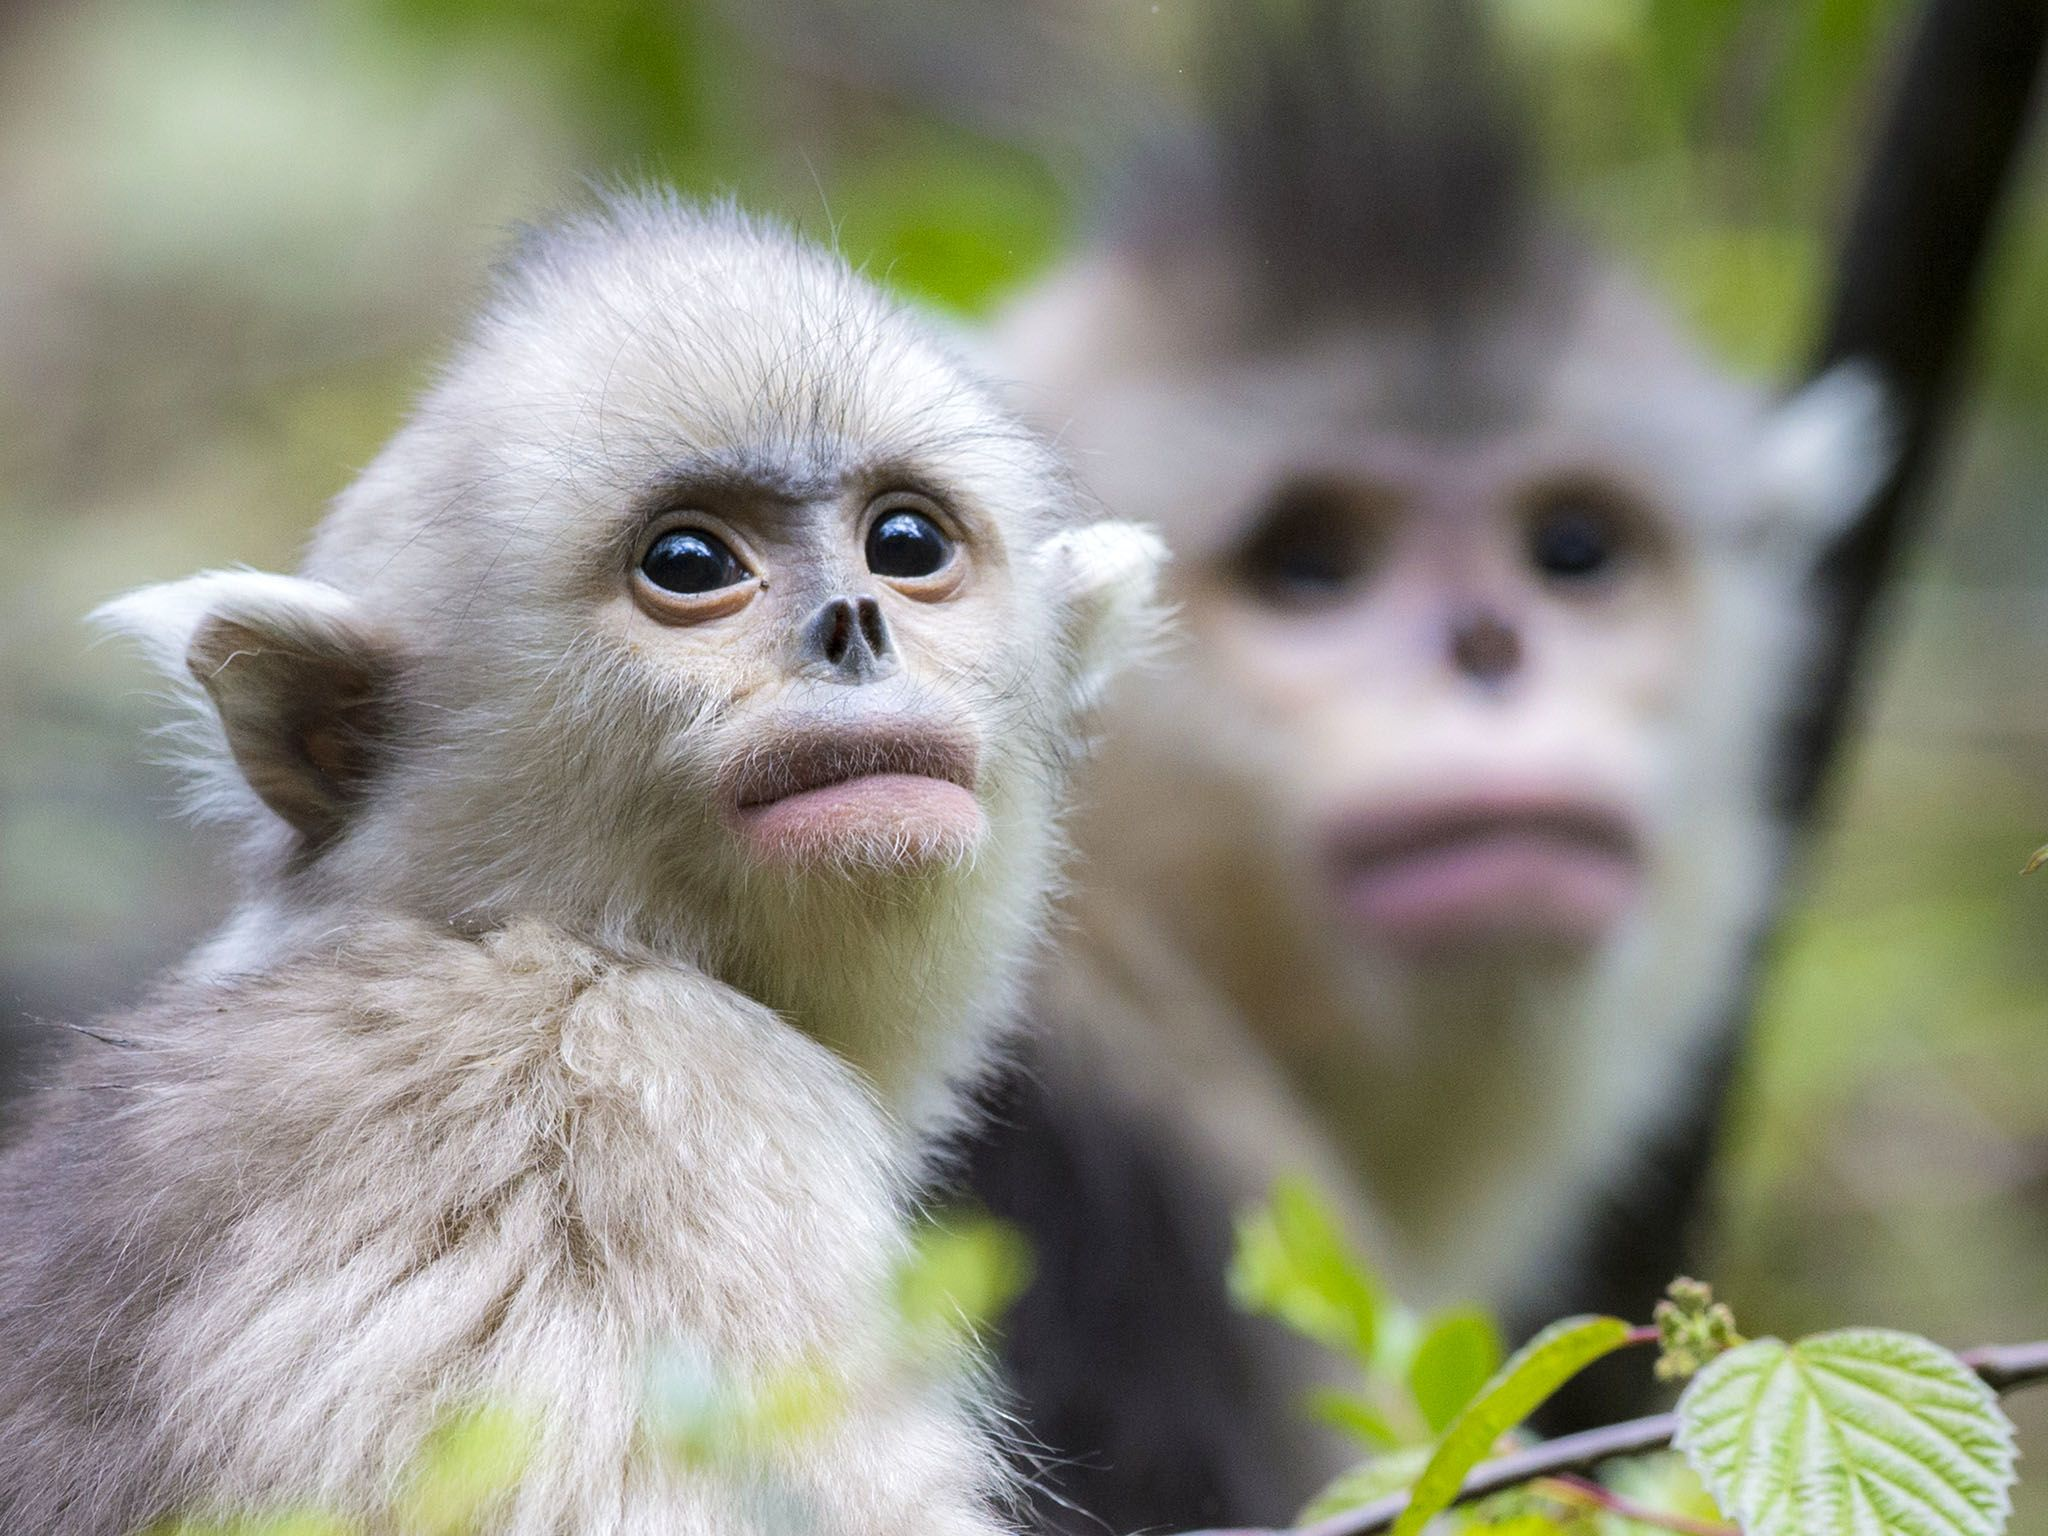 Yearling and mother snub-nosed monkey, Rhinopithecus bieti. This image is from Snub-Nosed Monkeys. [Photo of the day - November 2015]